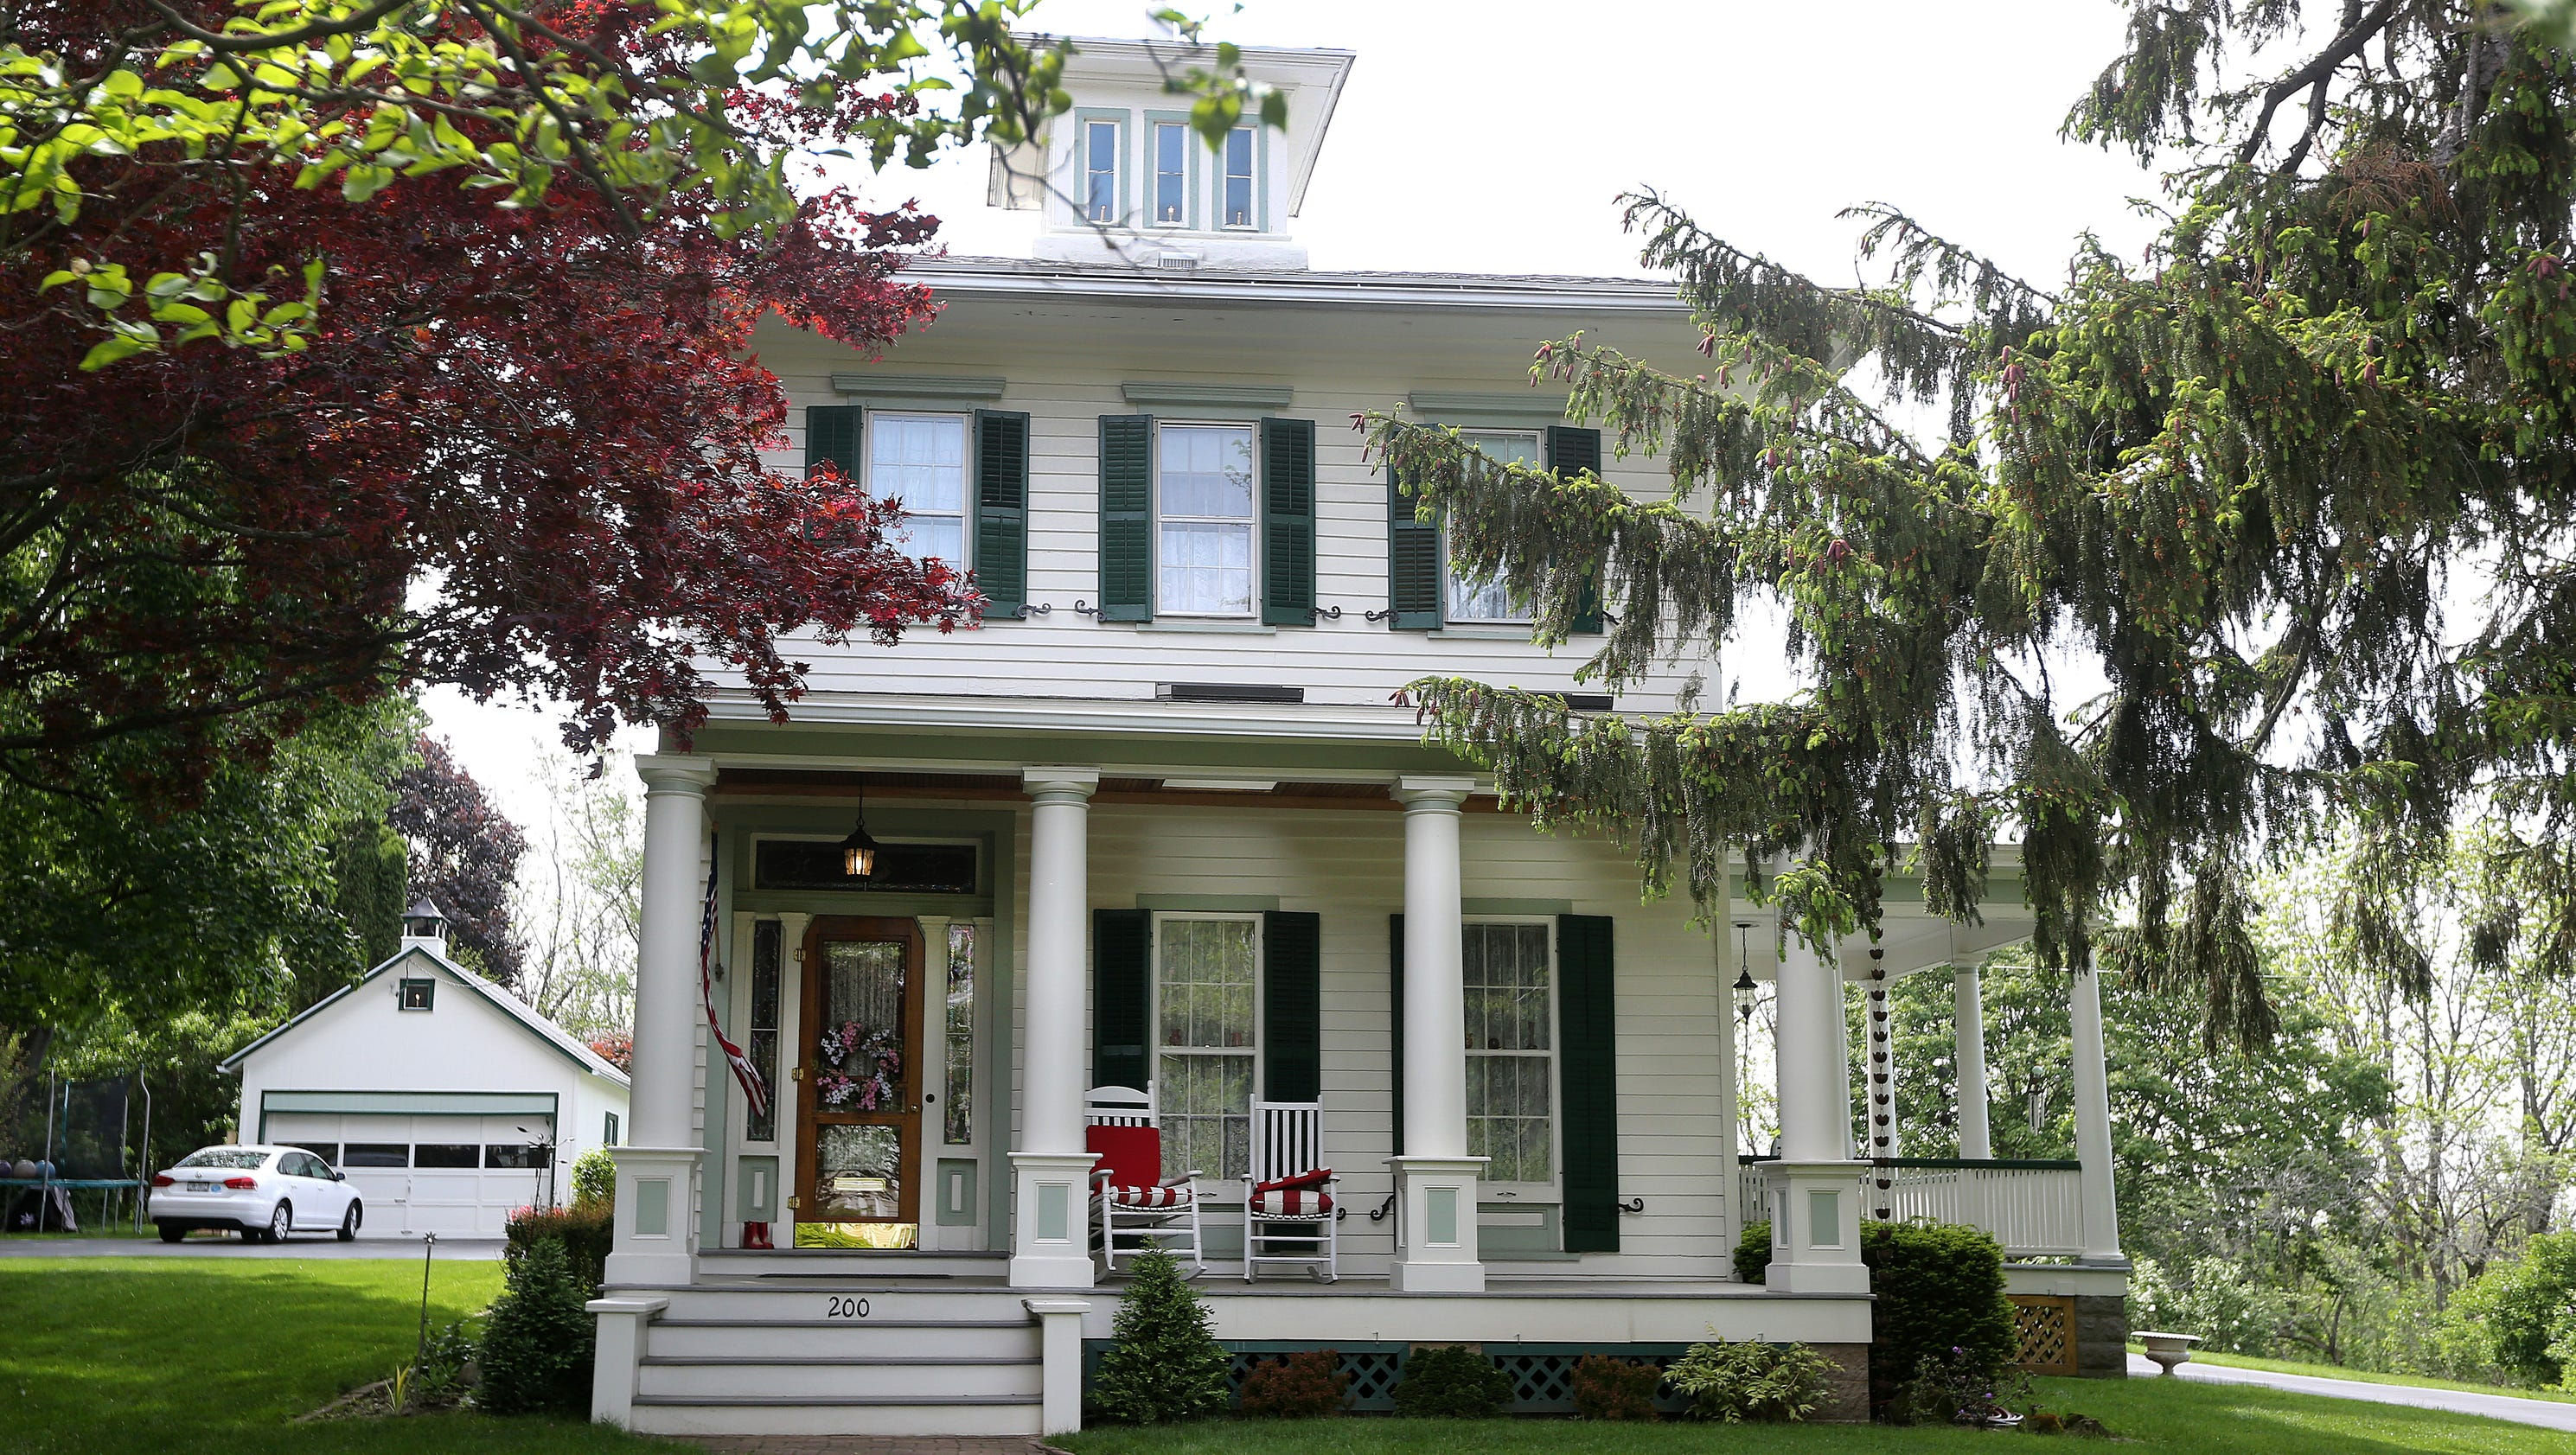 Historic grand home for sale in Fairport